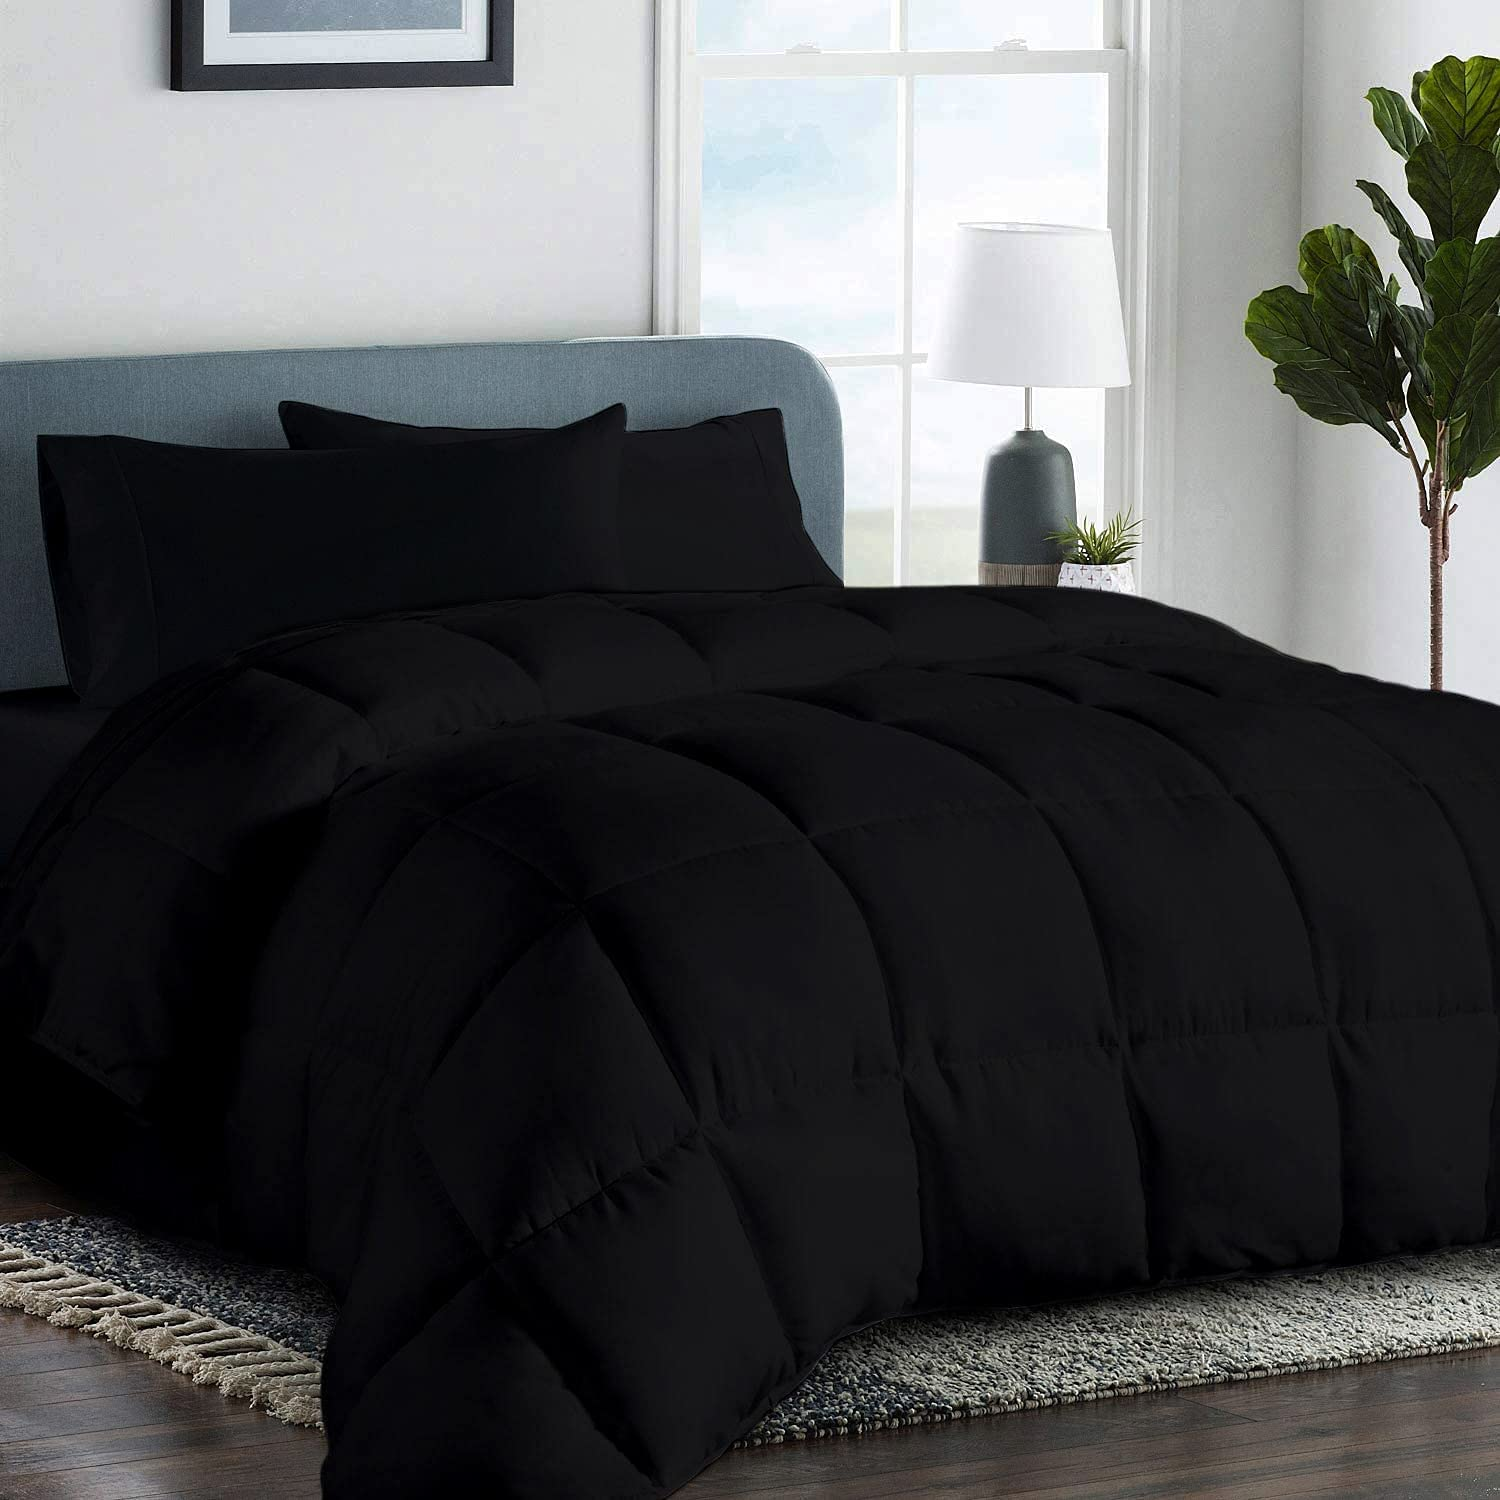 Organic Cotton and Polyester King Set Black Comforter - quality assurance Comforte Max 72% OFF